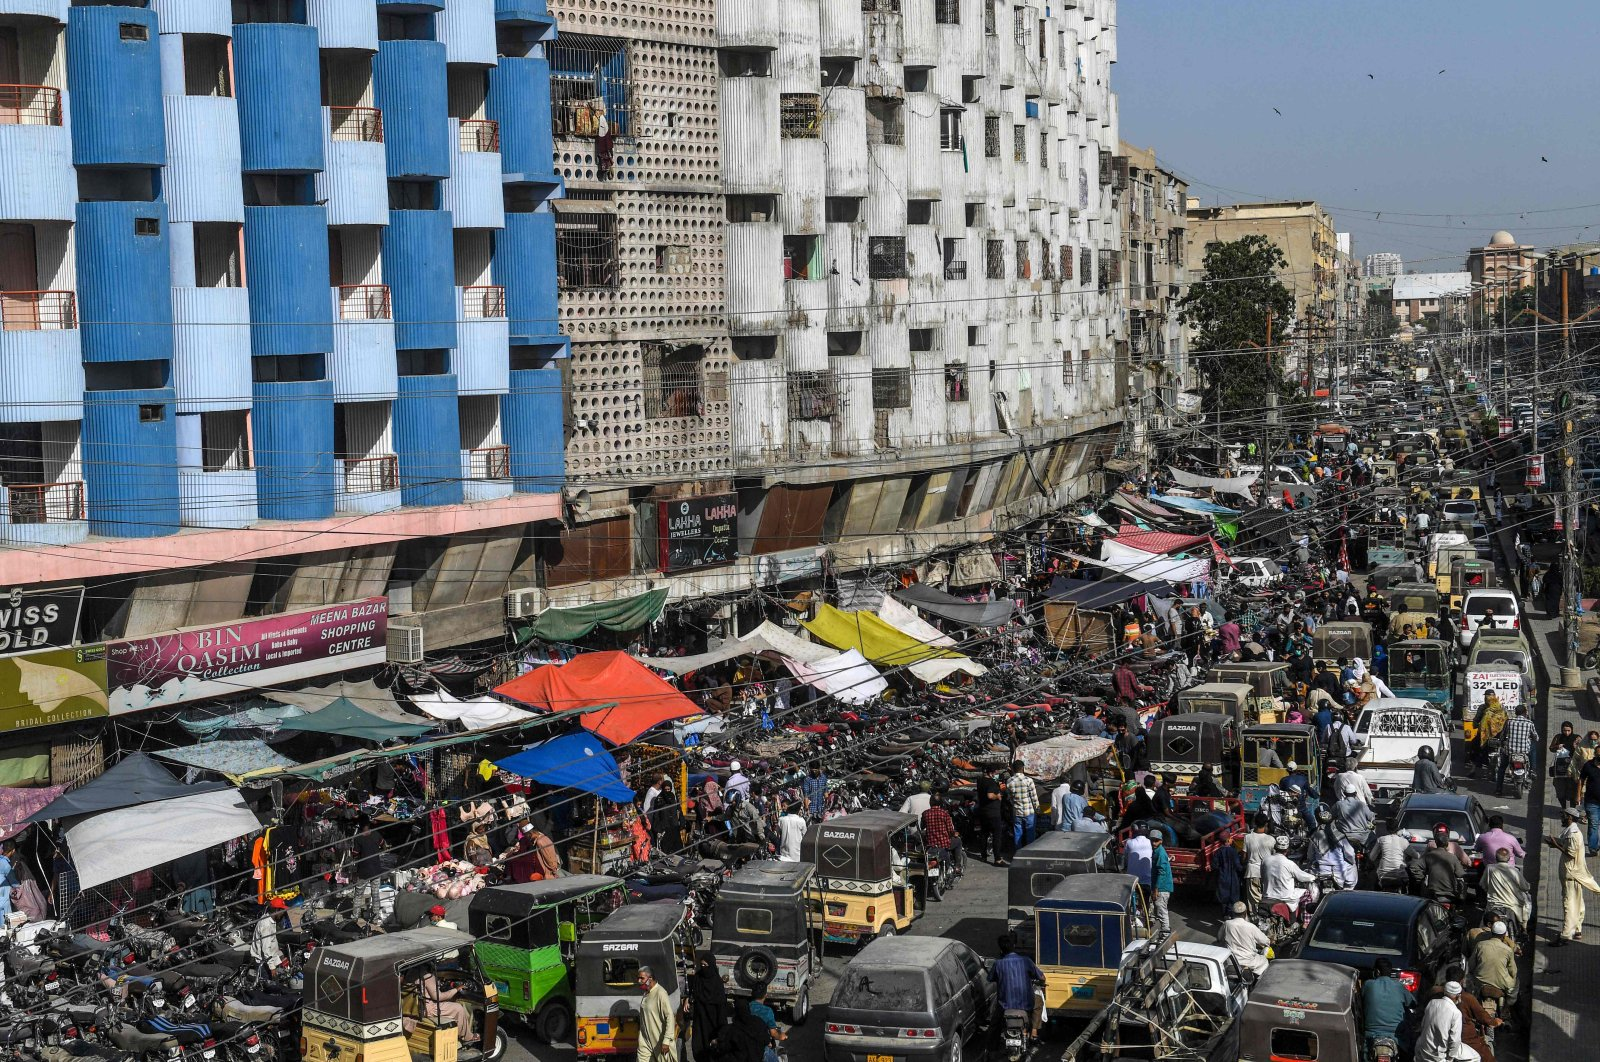 Motorists and people gather at a market for shopping ahead of the Muslim Eid al-Fitr festival in Karachi on May 20, 2020. (AFP Photo)